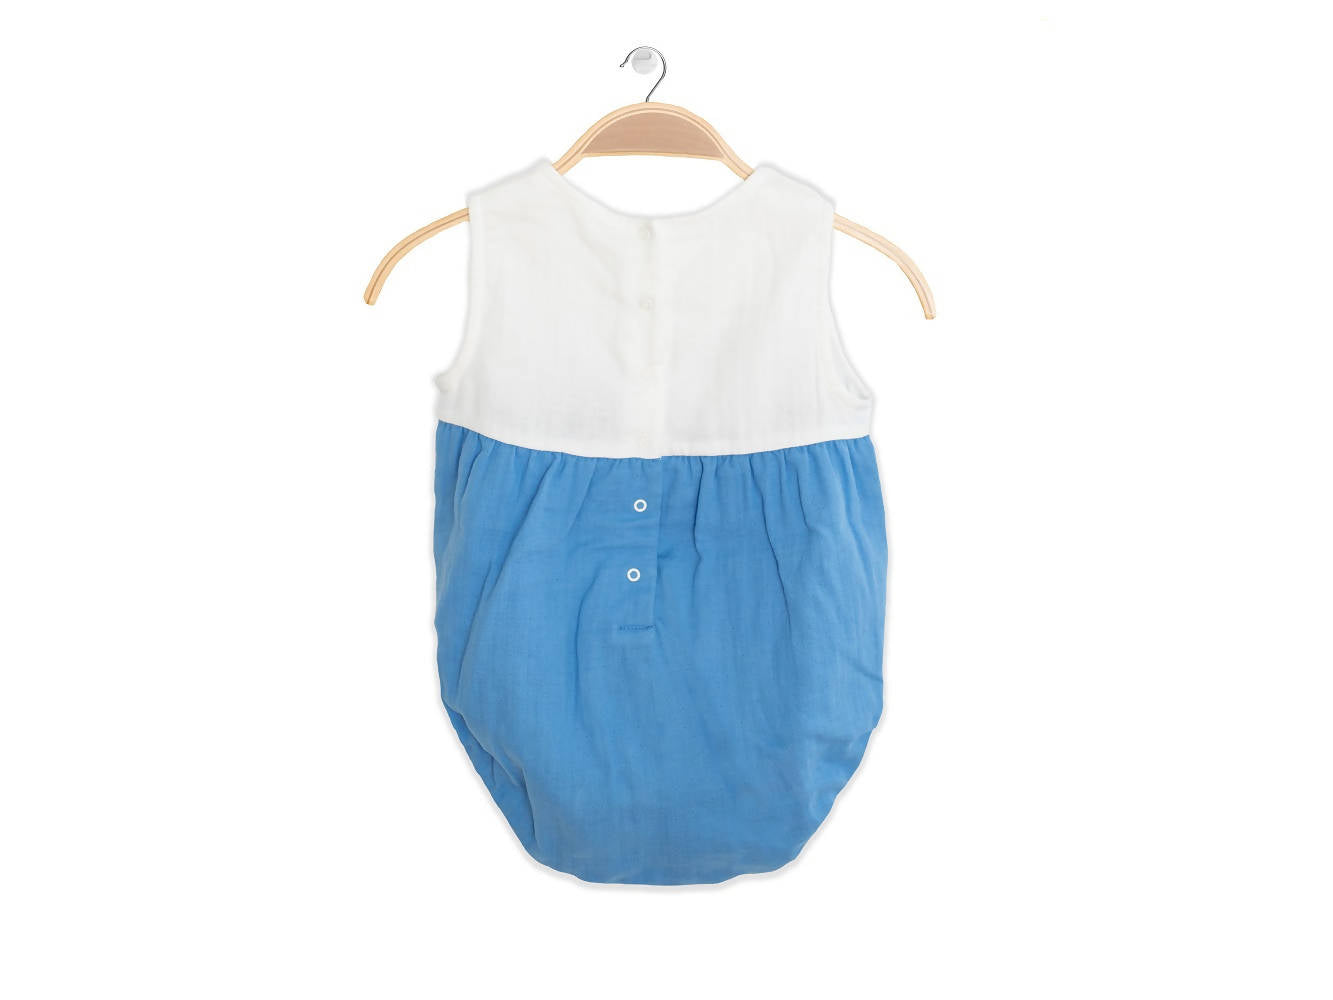 Peter Jo Kids Organic Onesie Lullaby blue made of organic muslin cotton 1